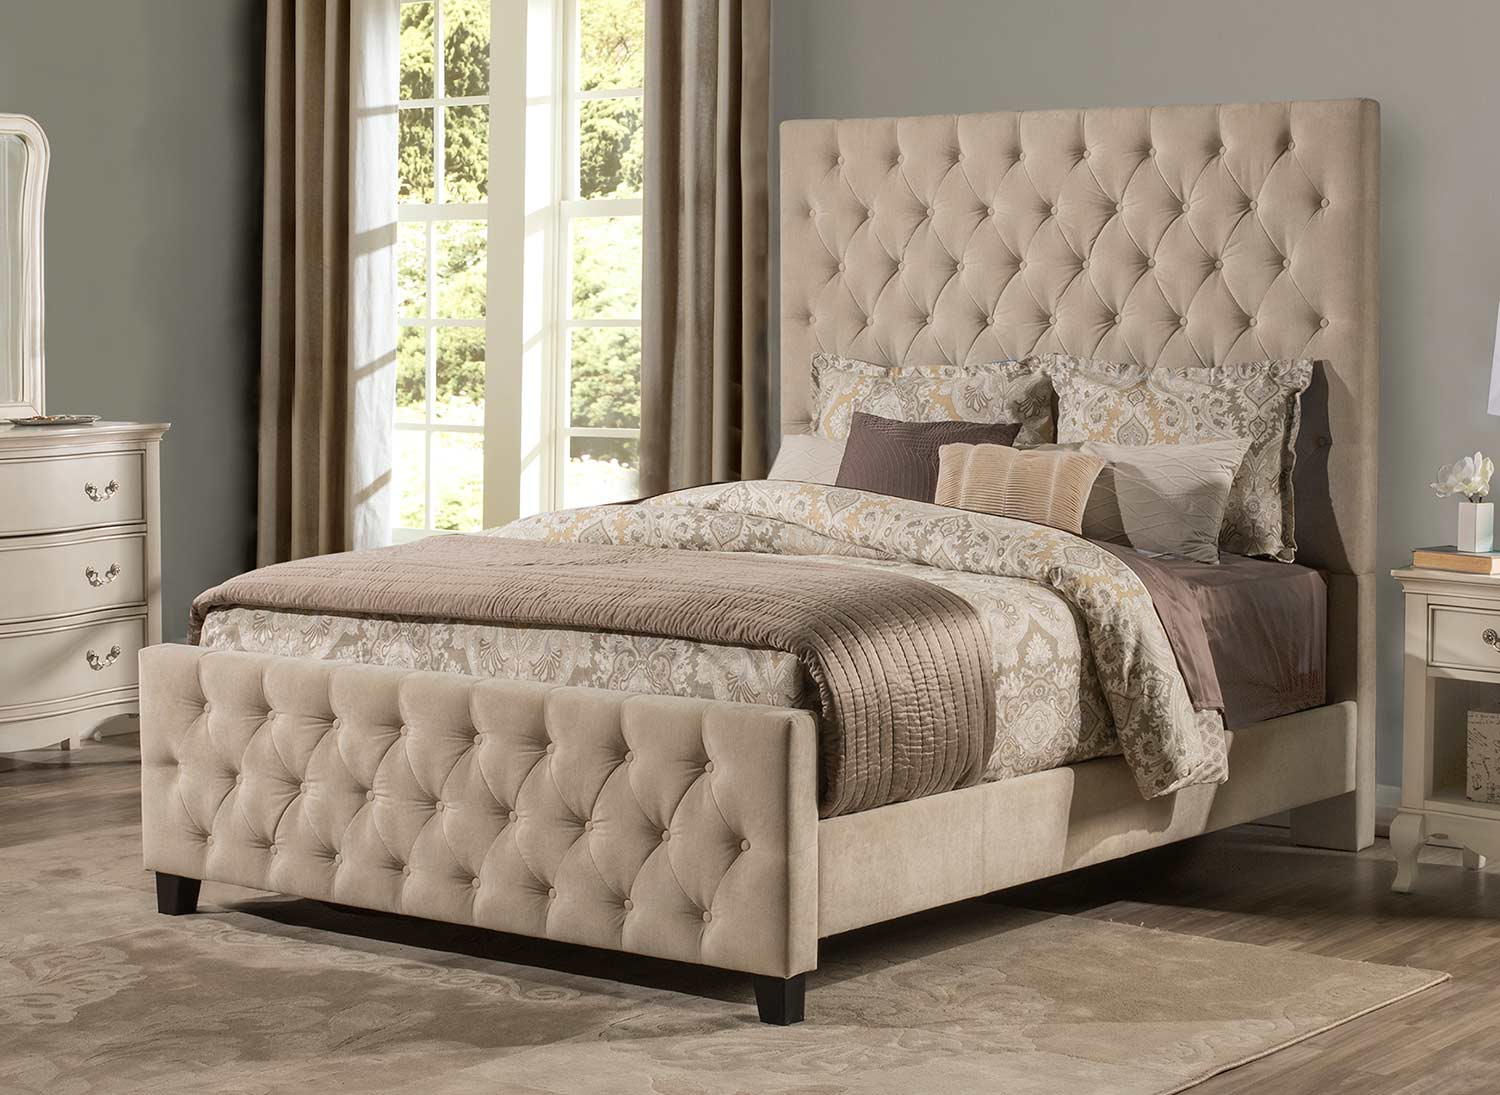 Hillsdale Savannah Bed - Beige